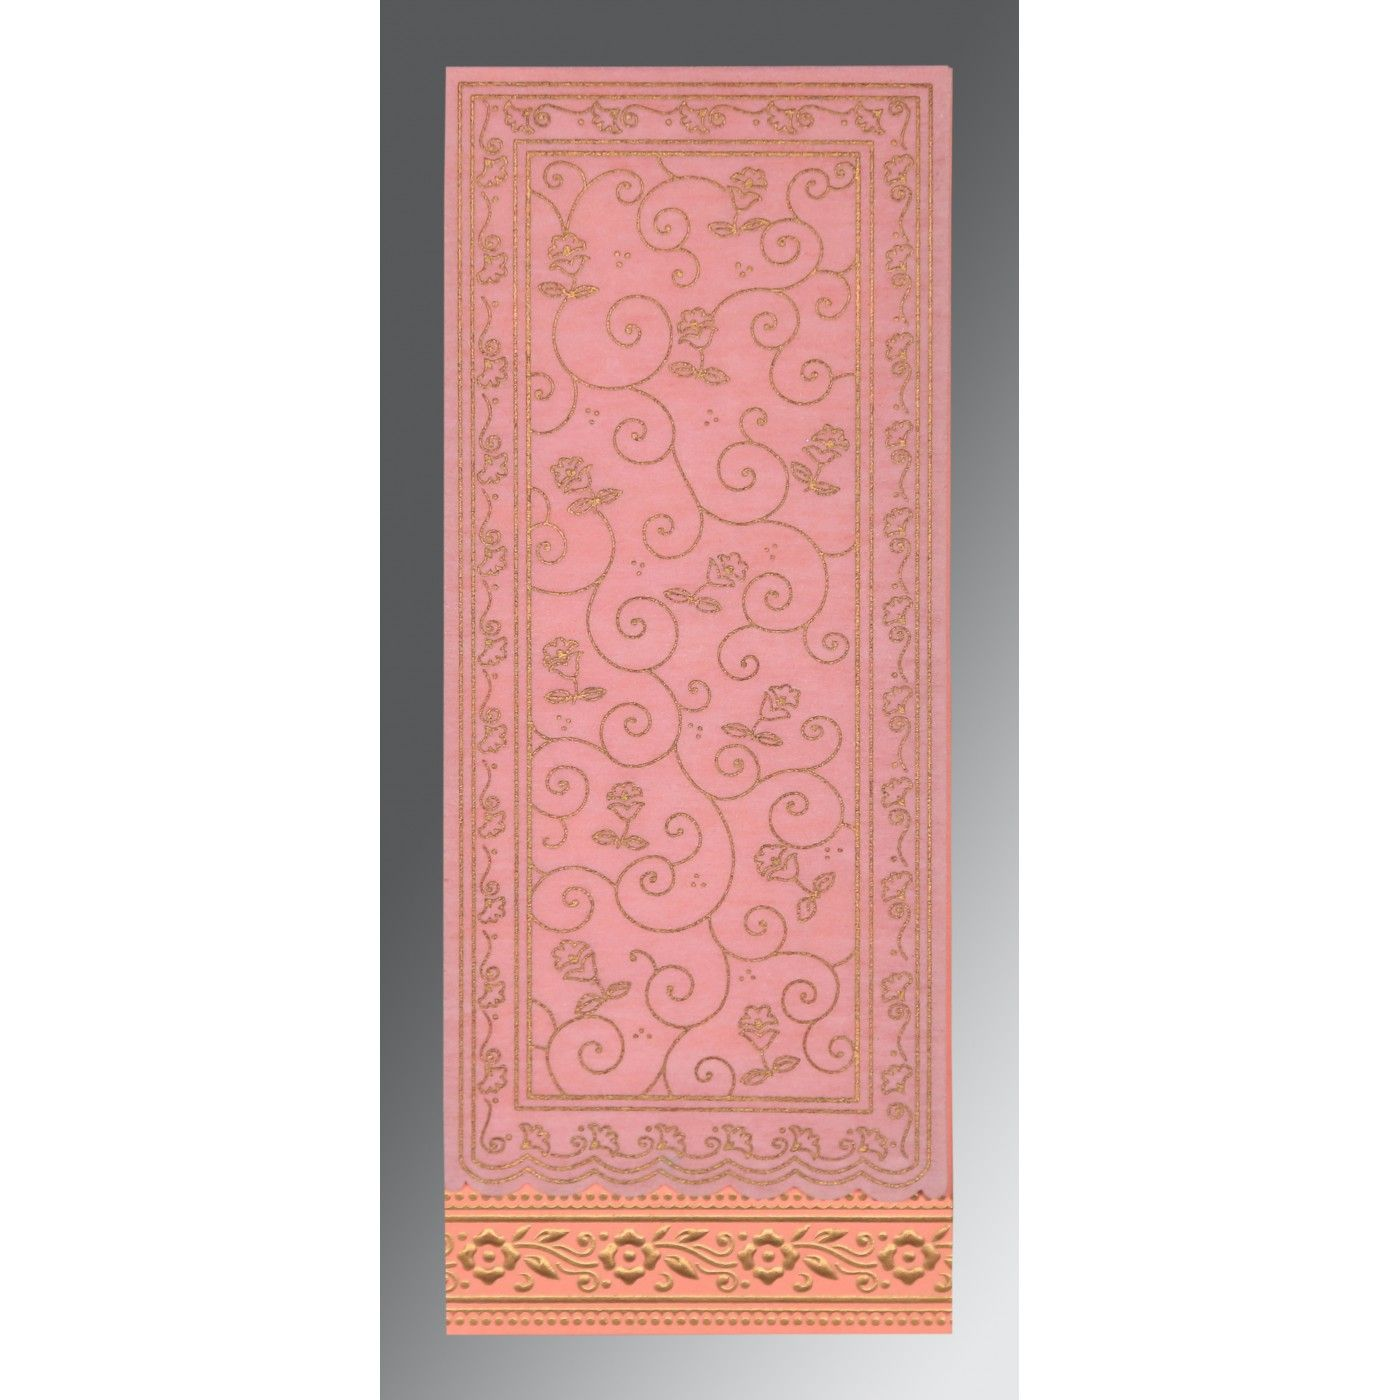 BLUSH PINK WOOLY SCREEN PRINTED WEDDING INVITATION : CSO-8220J - IndianWeddingCards